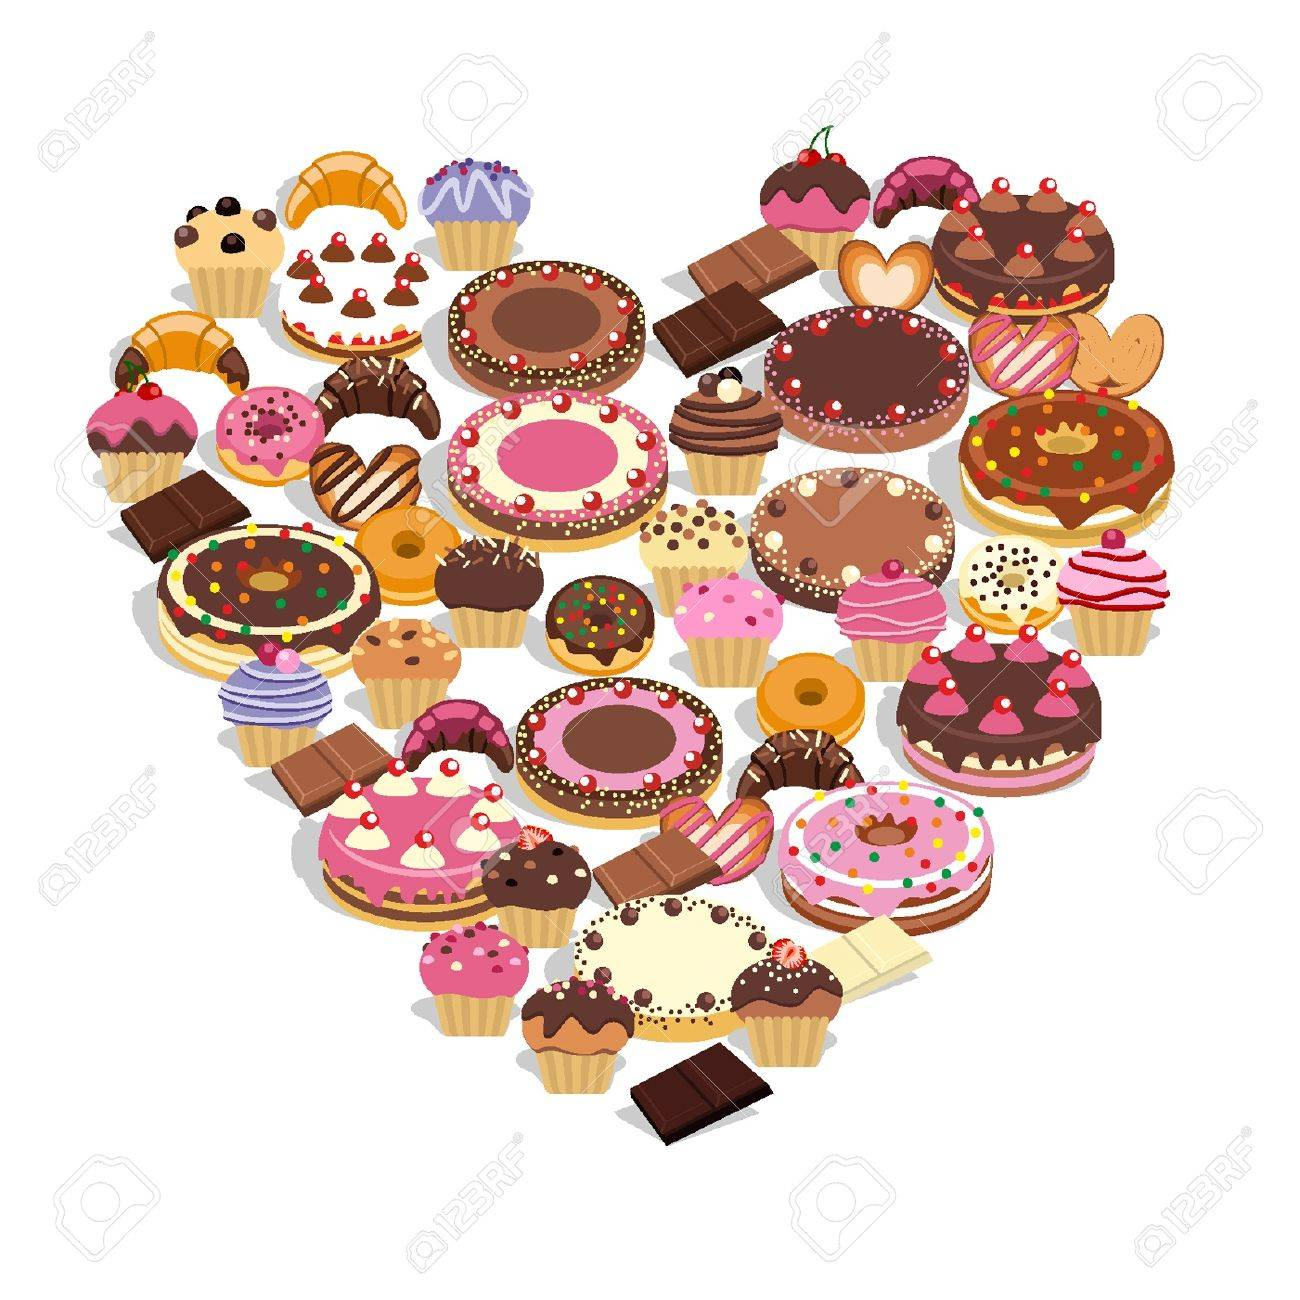 Sweets forming a heart Stock Vector - 18134318